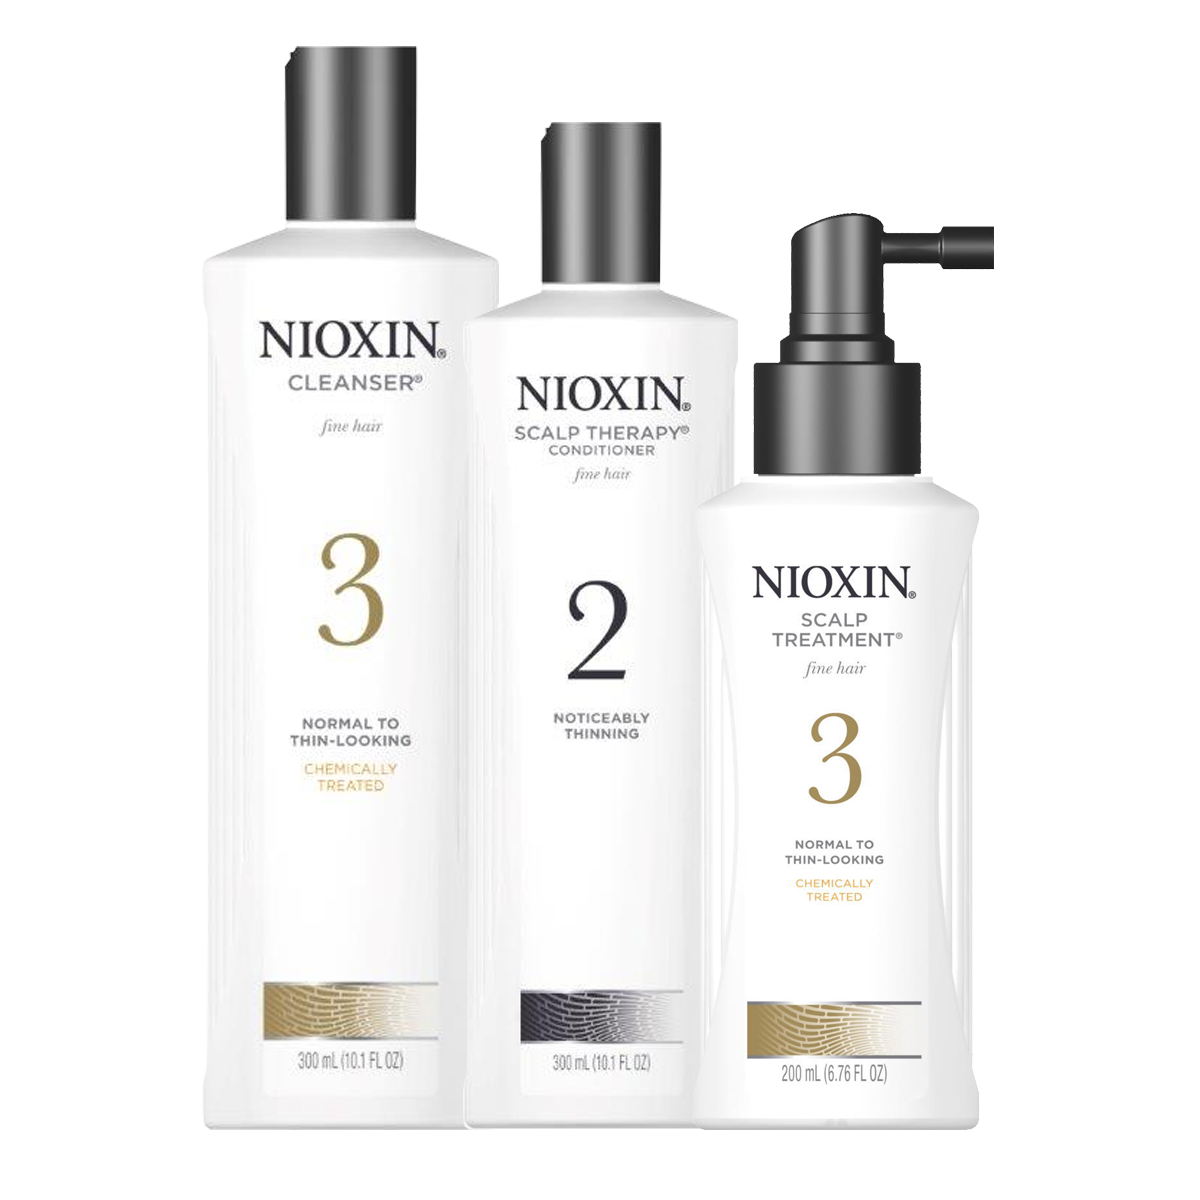 Nioxin ALL PRODUCTS buy one, get one 50% off